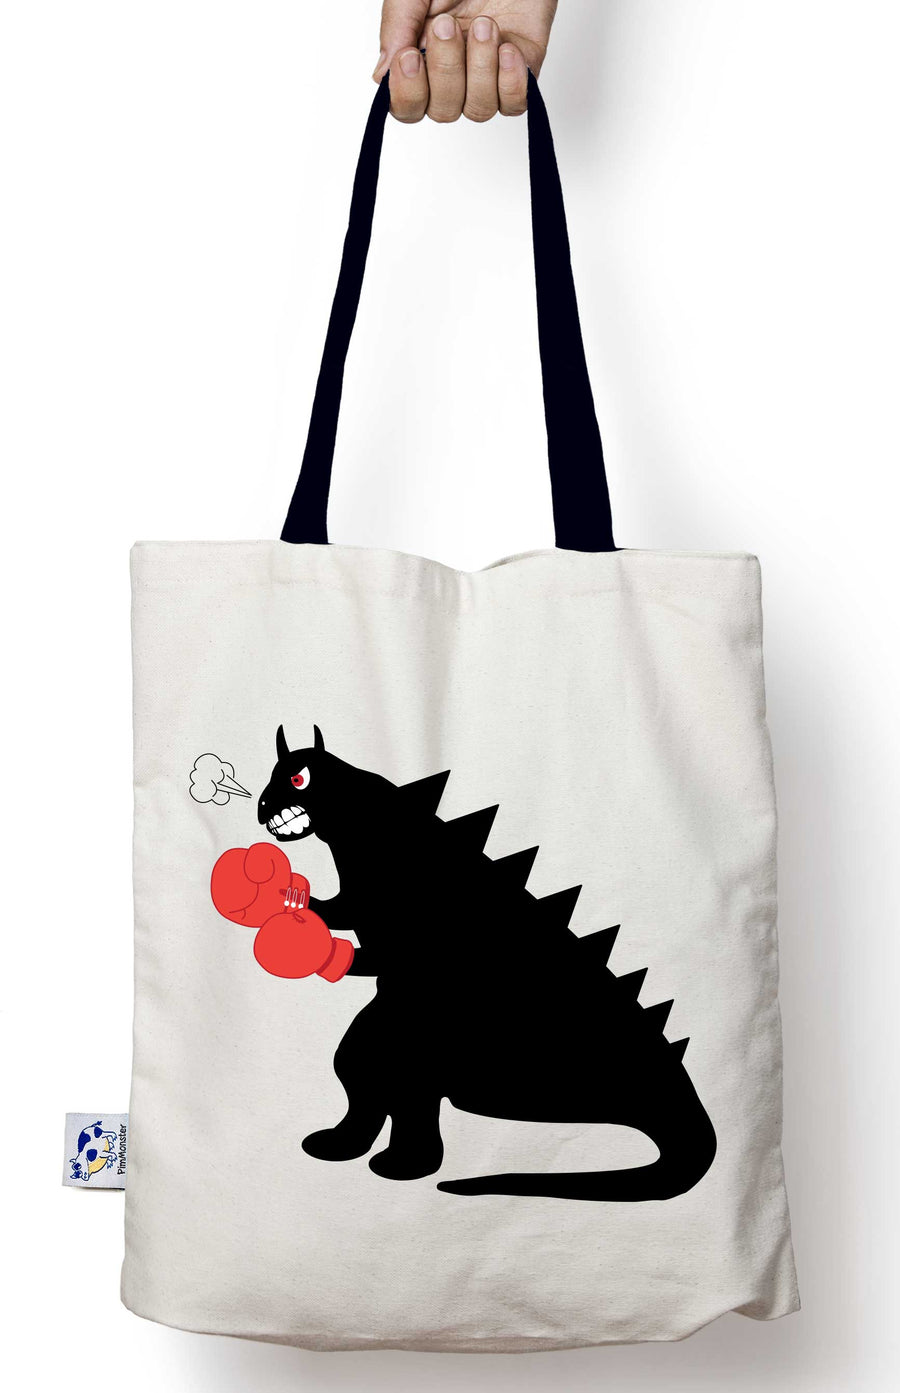 The Boxing Dinosaur tote bag